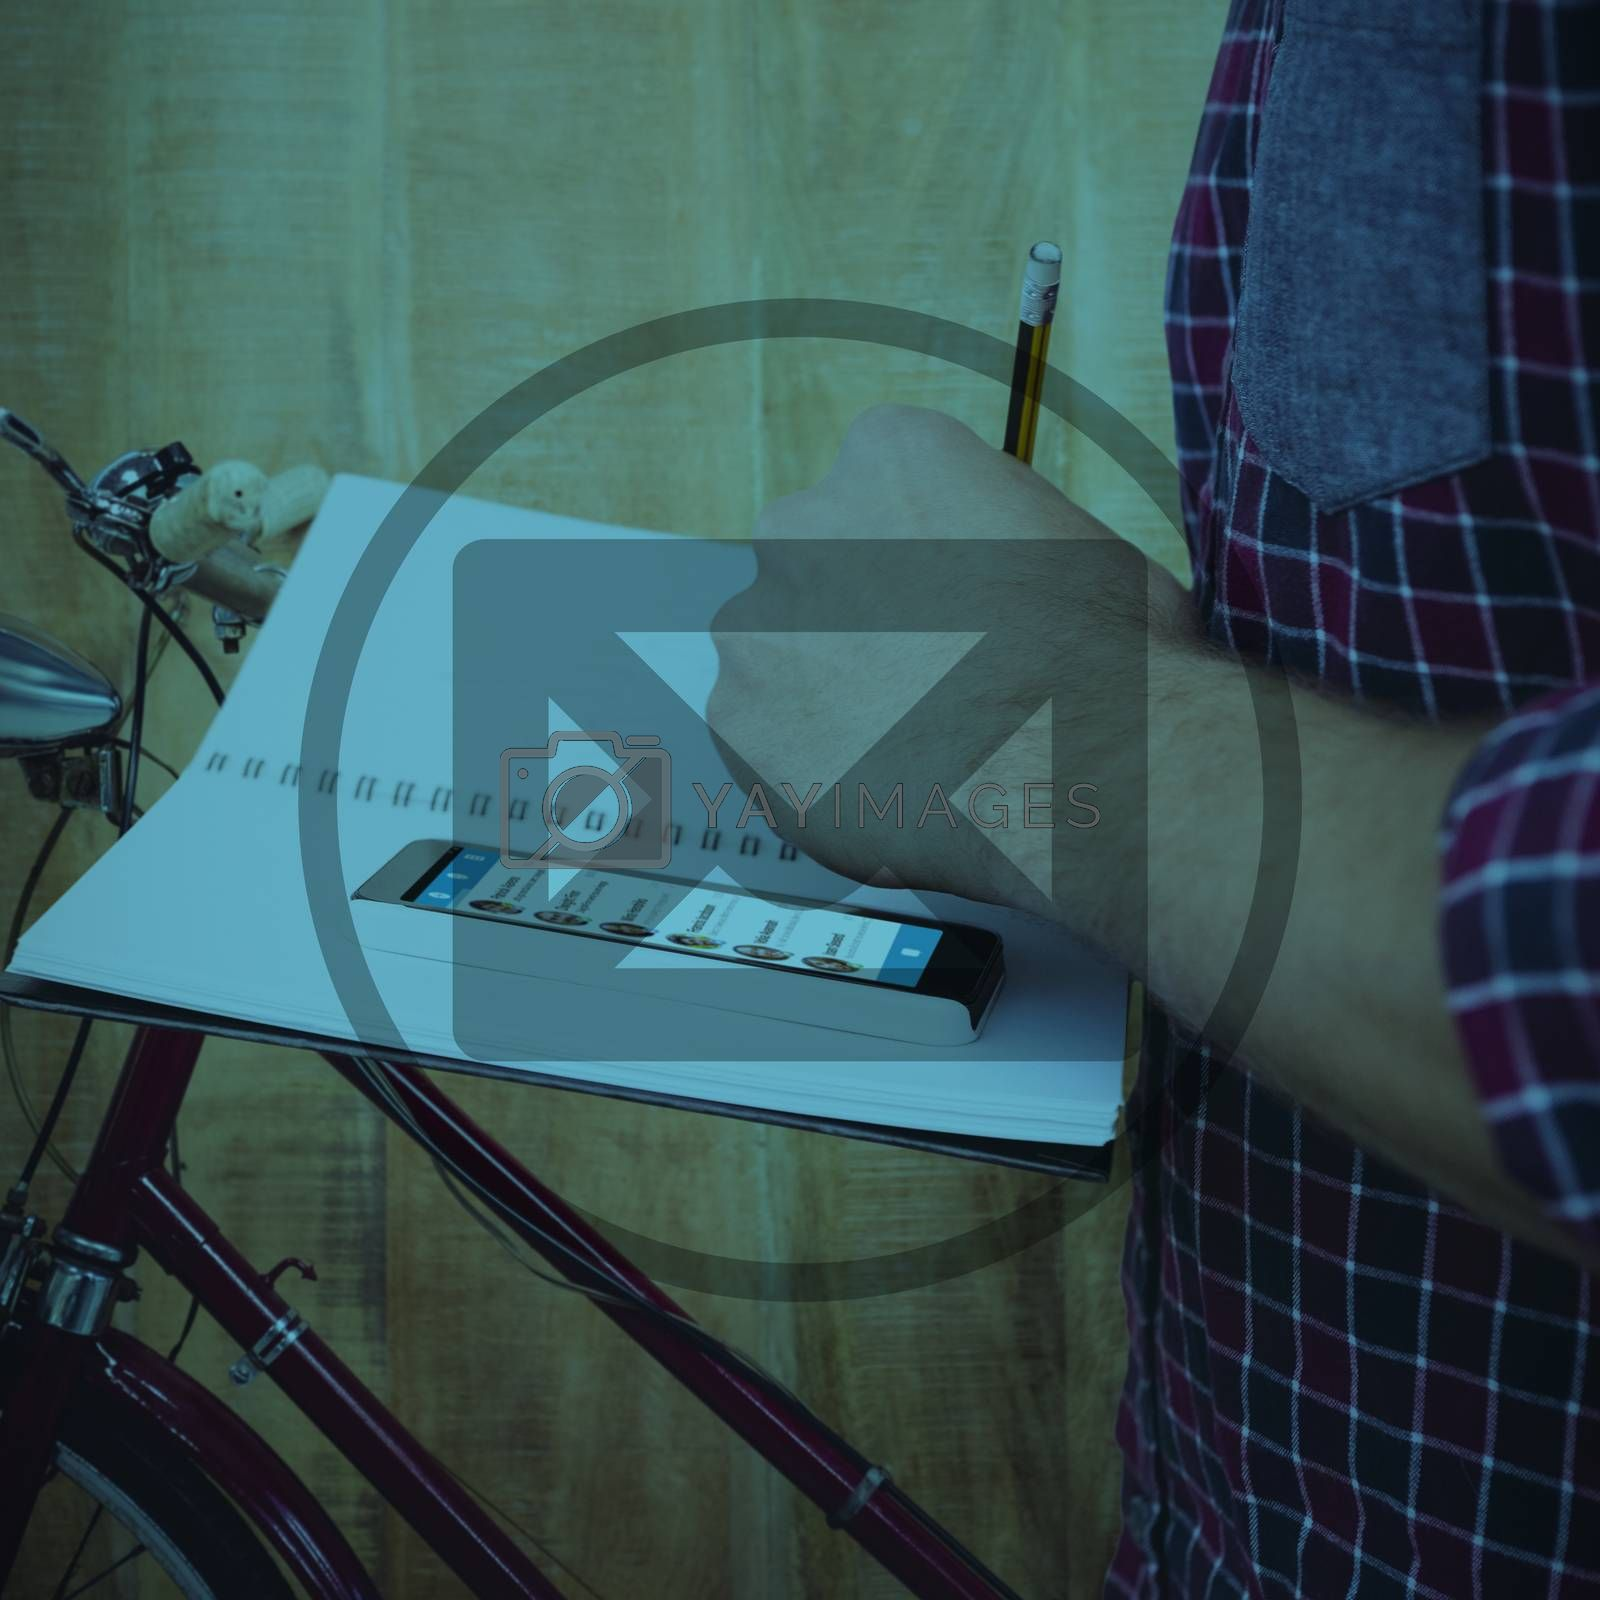 Cropped image of man with smartphone writing on book against close up view of a bicycle